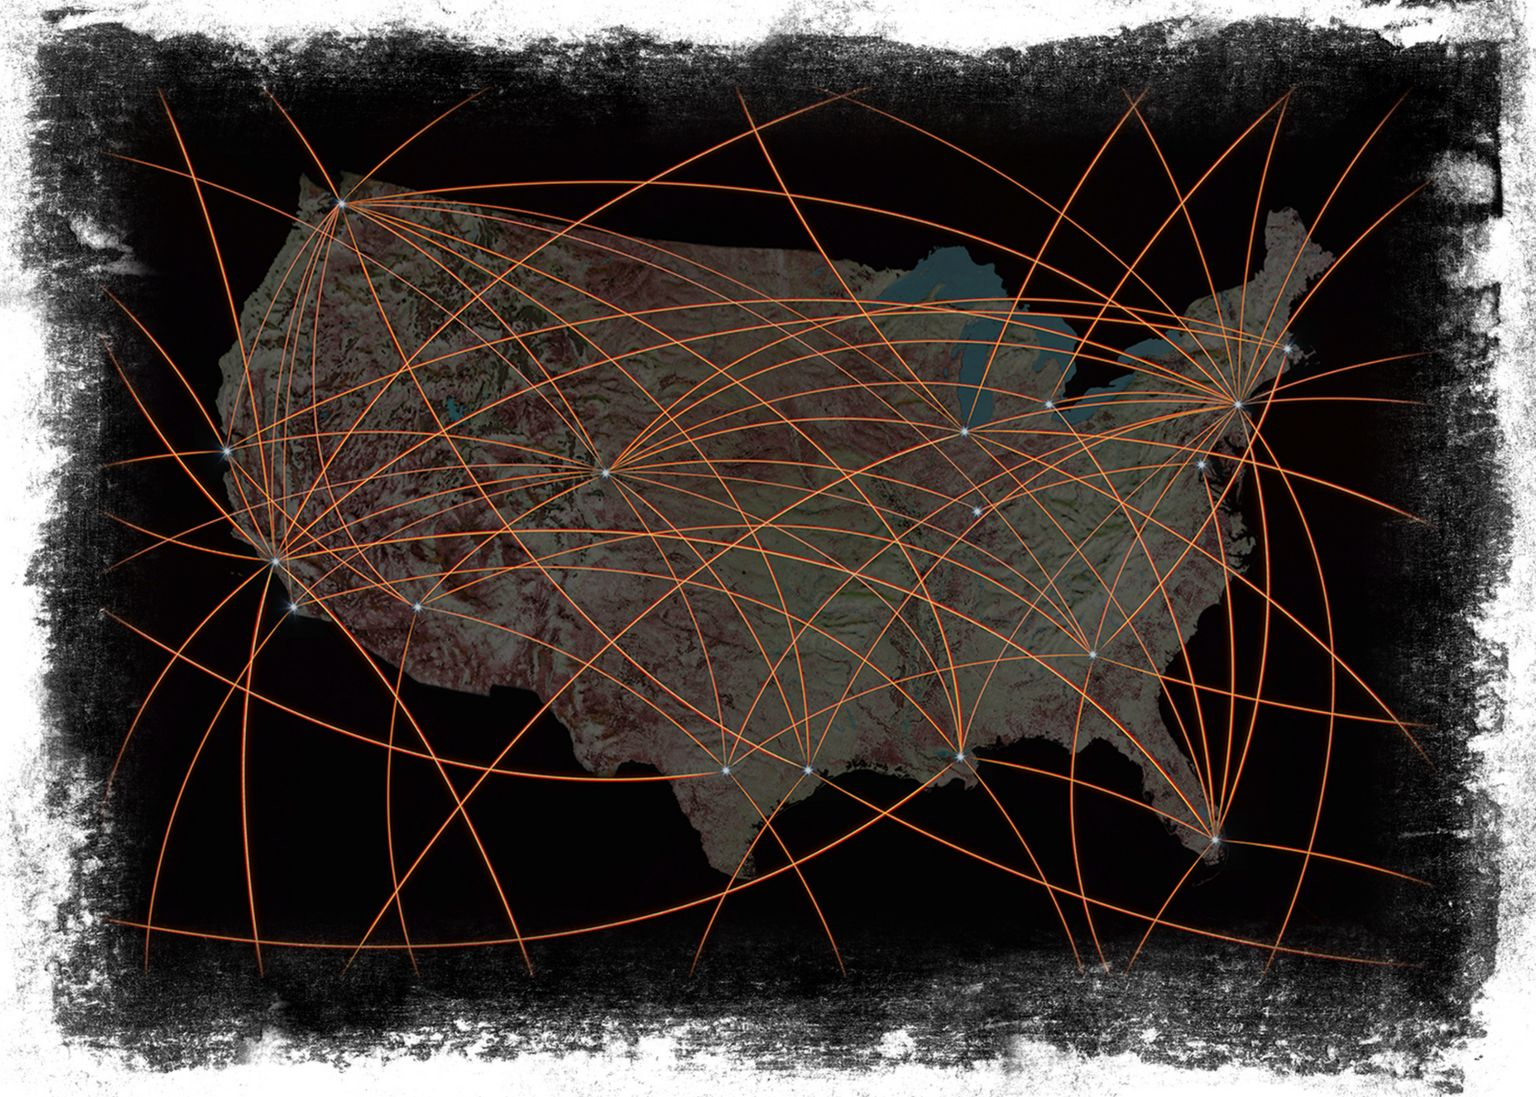 Graphic from Getty Stock images showing connections across US map